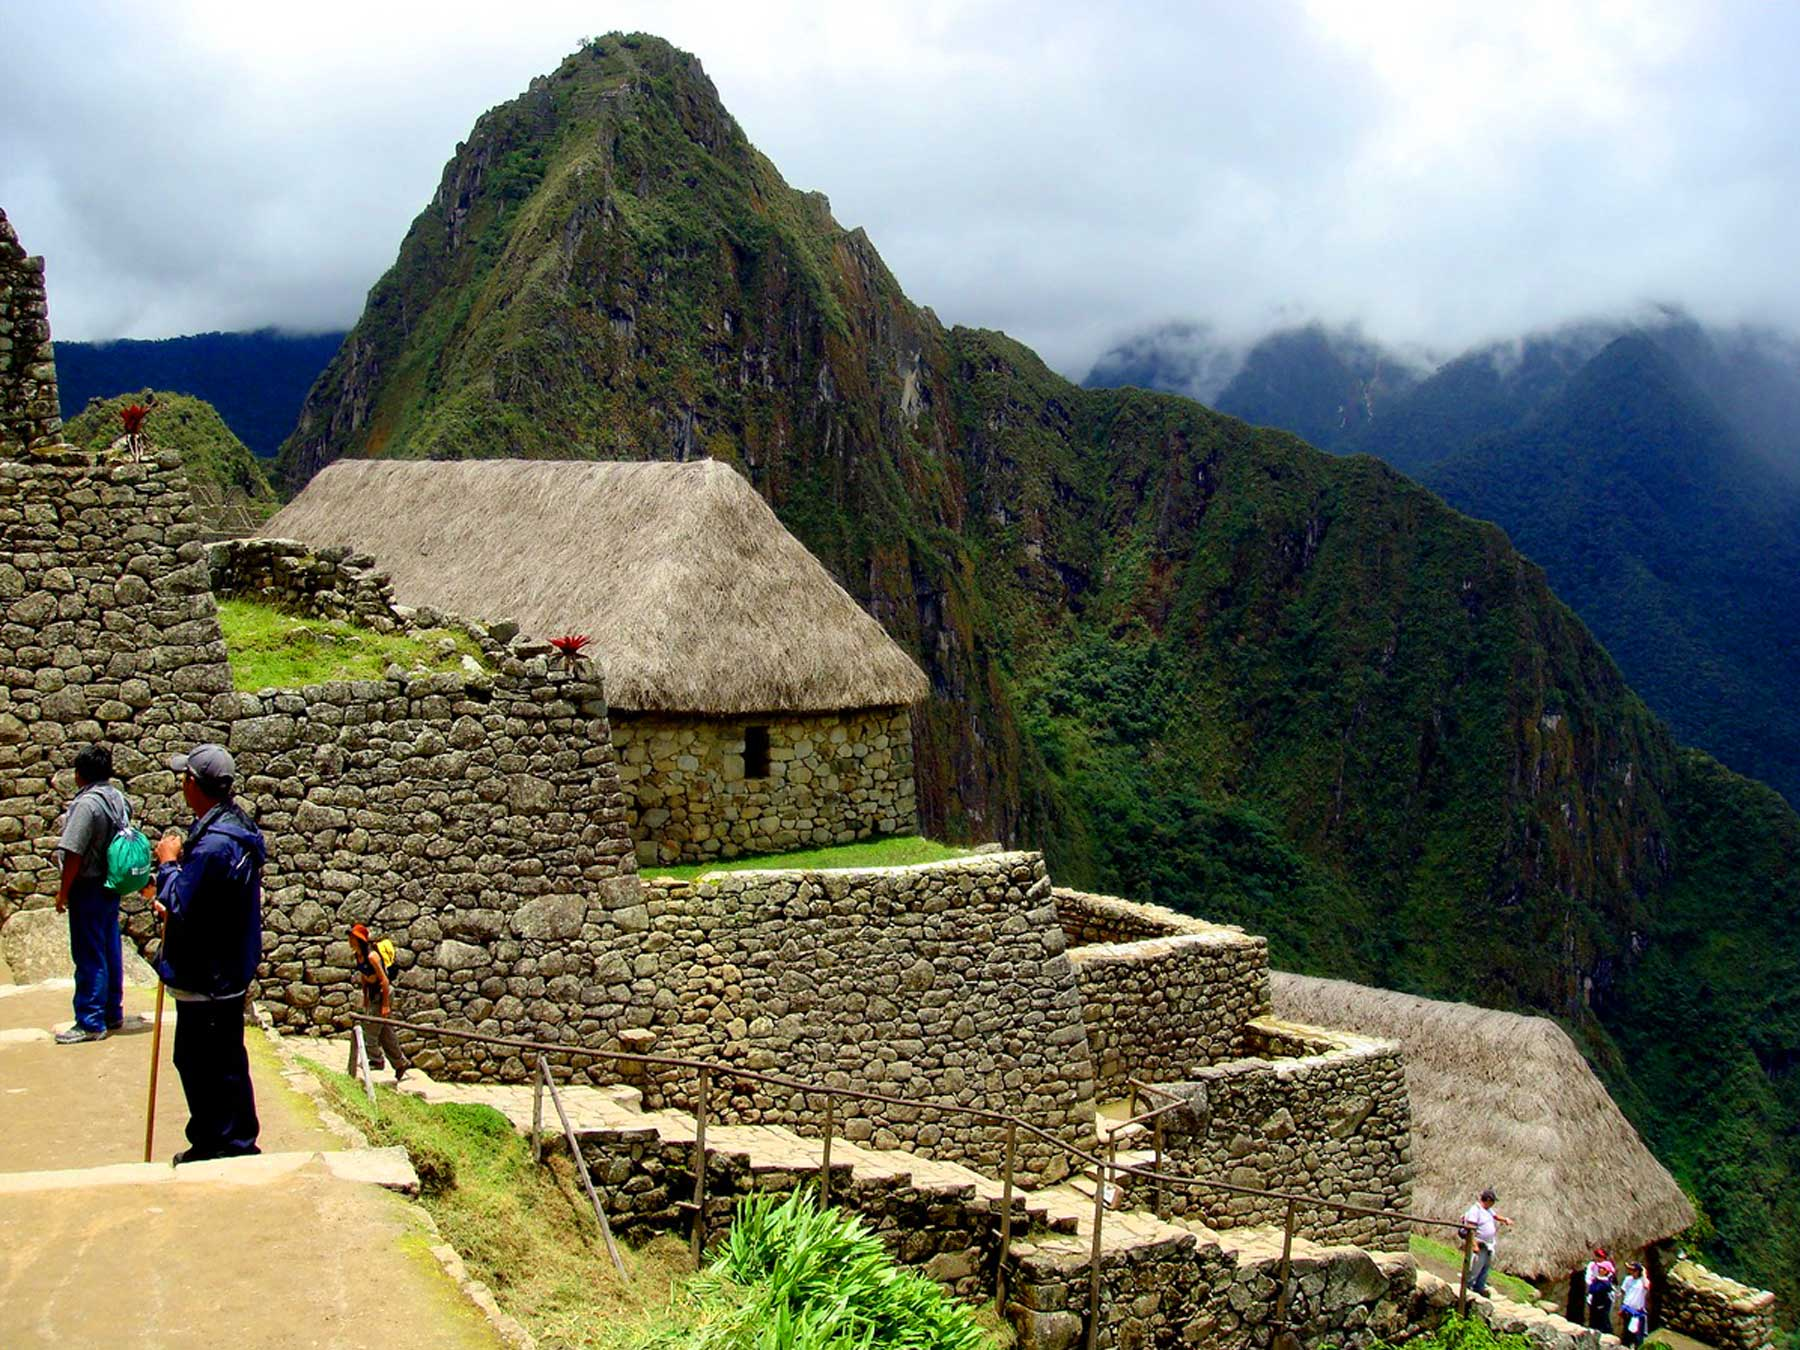 Upon entering Machu Picchu, we will observe this impressive stairway